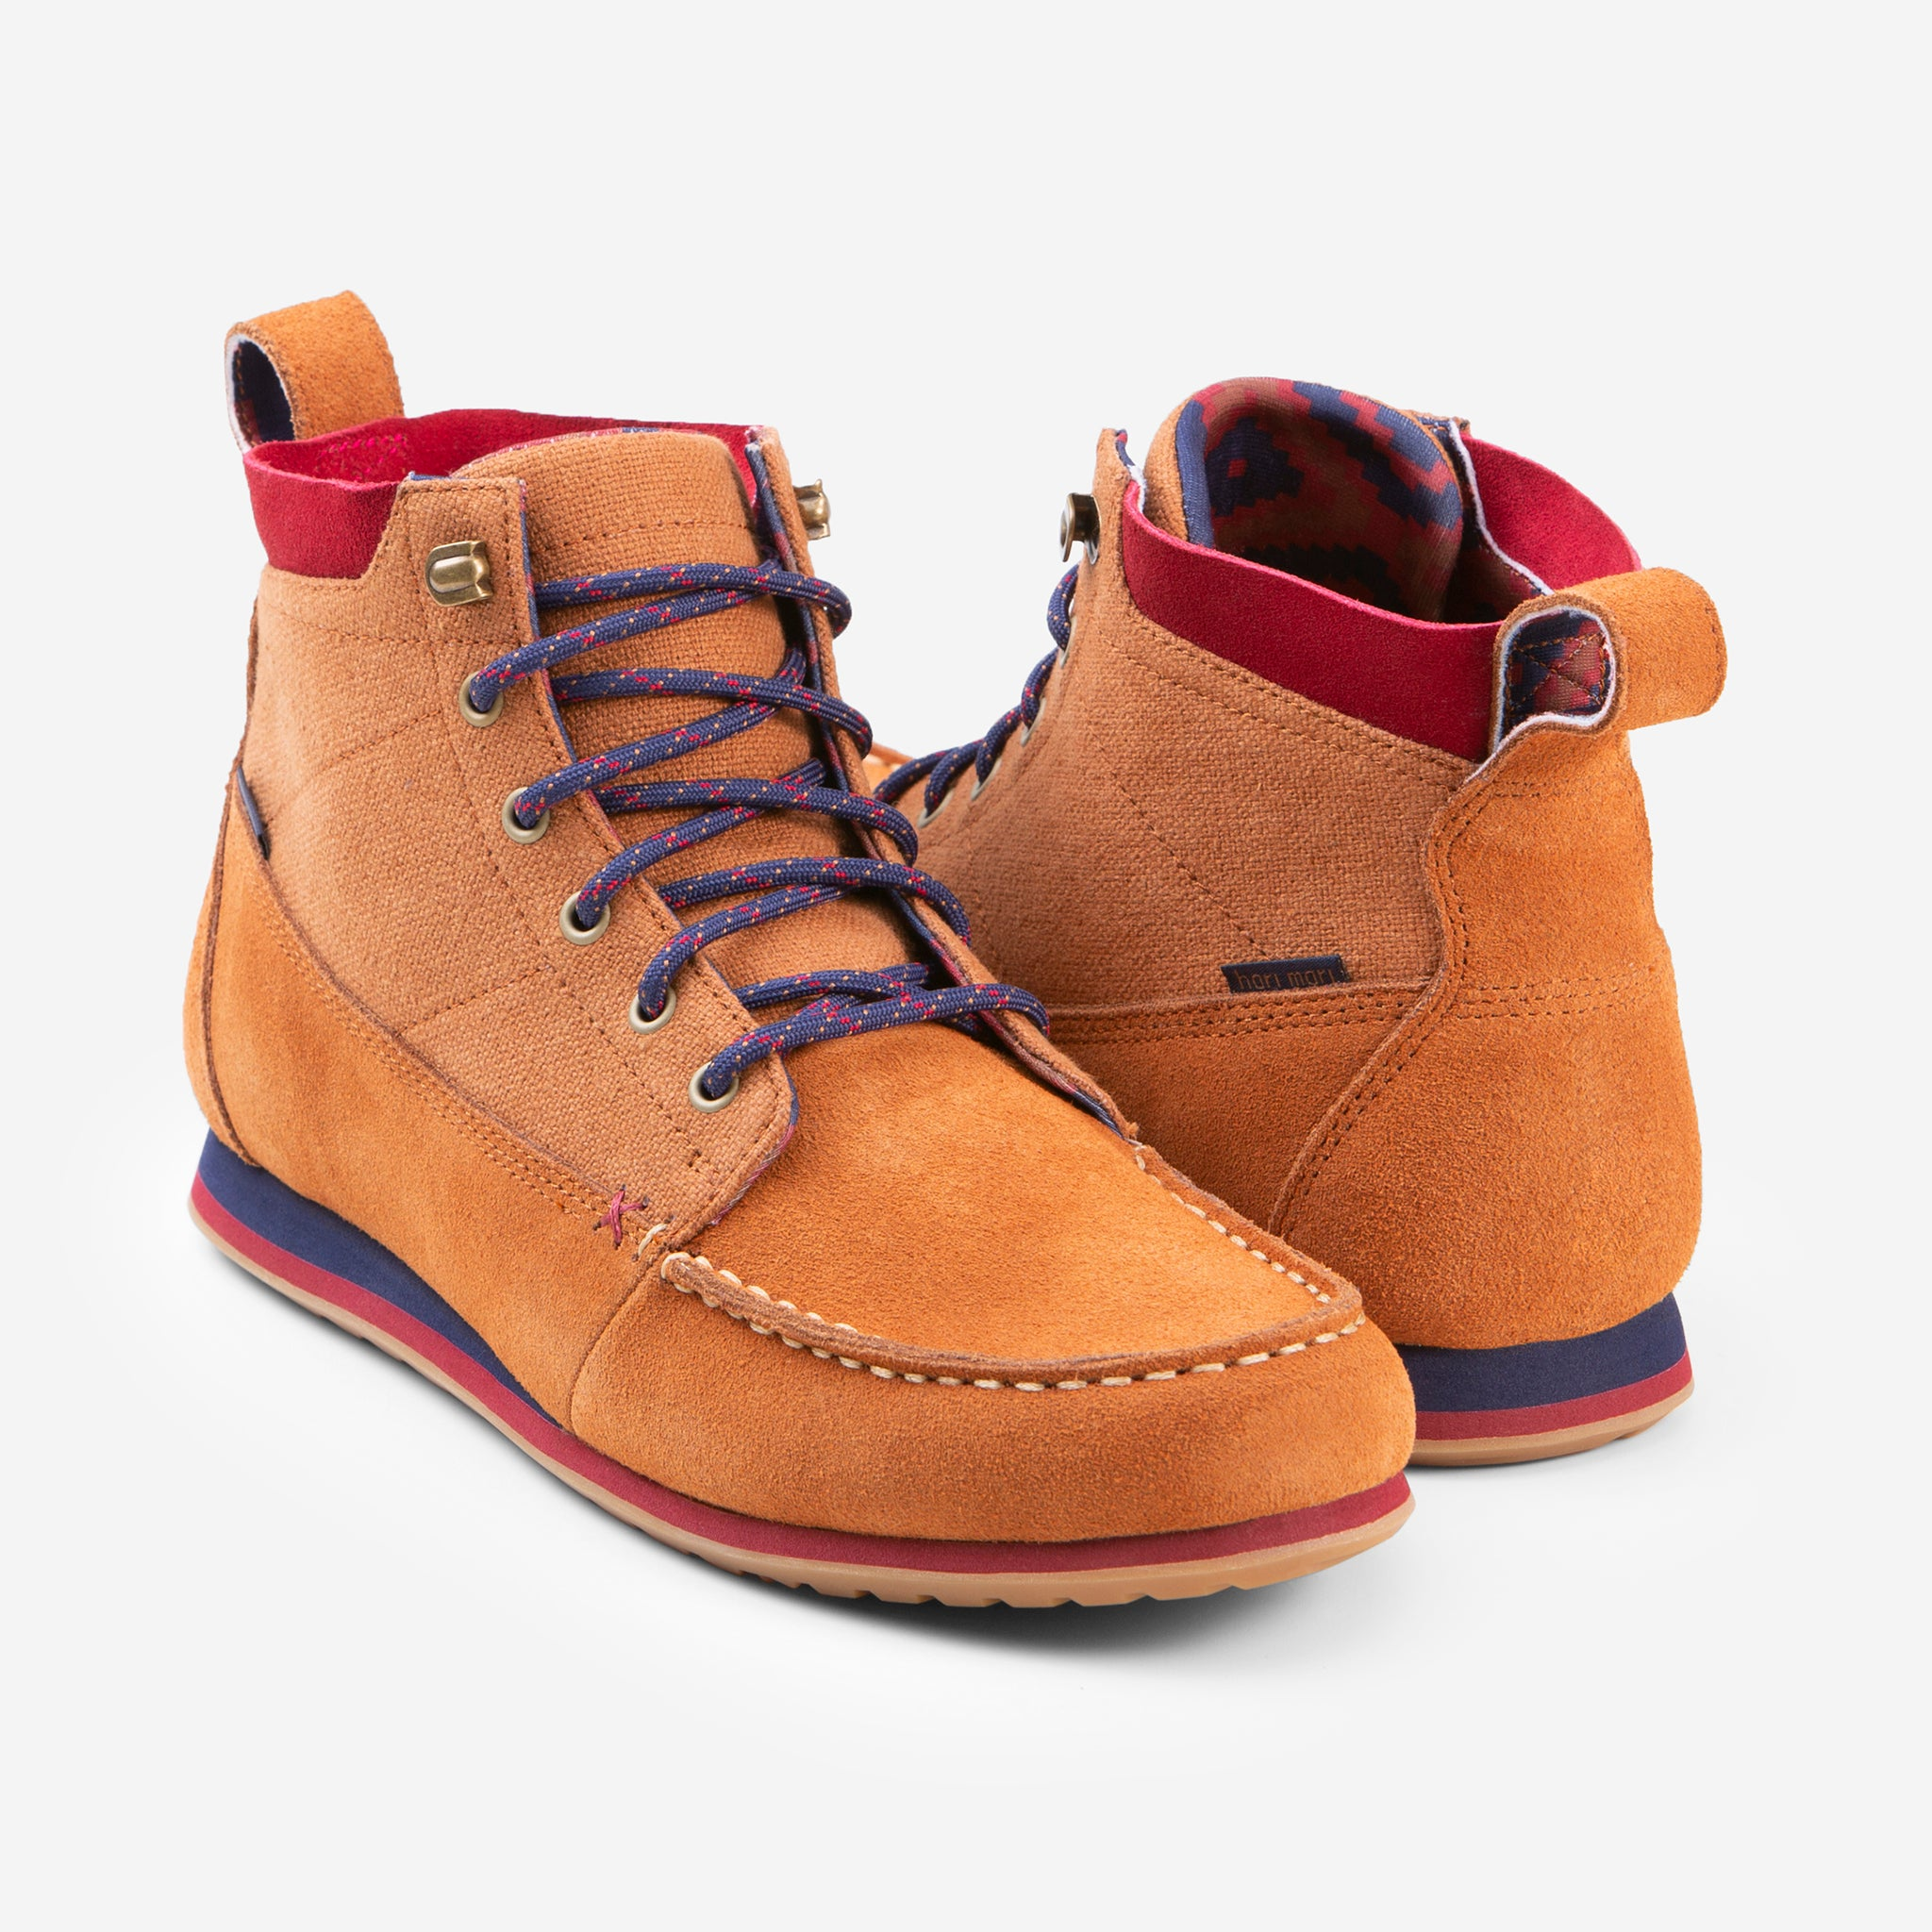 CanyonTreck Chukka - Men's - Tobacco - 45 Degree View